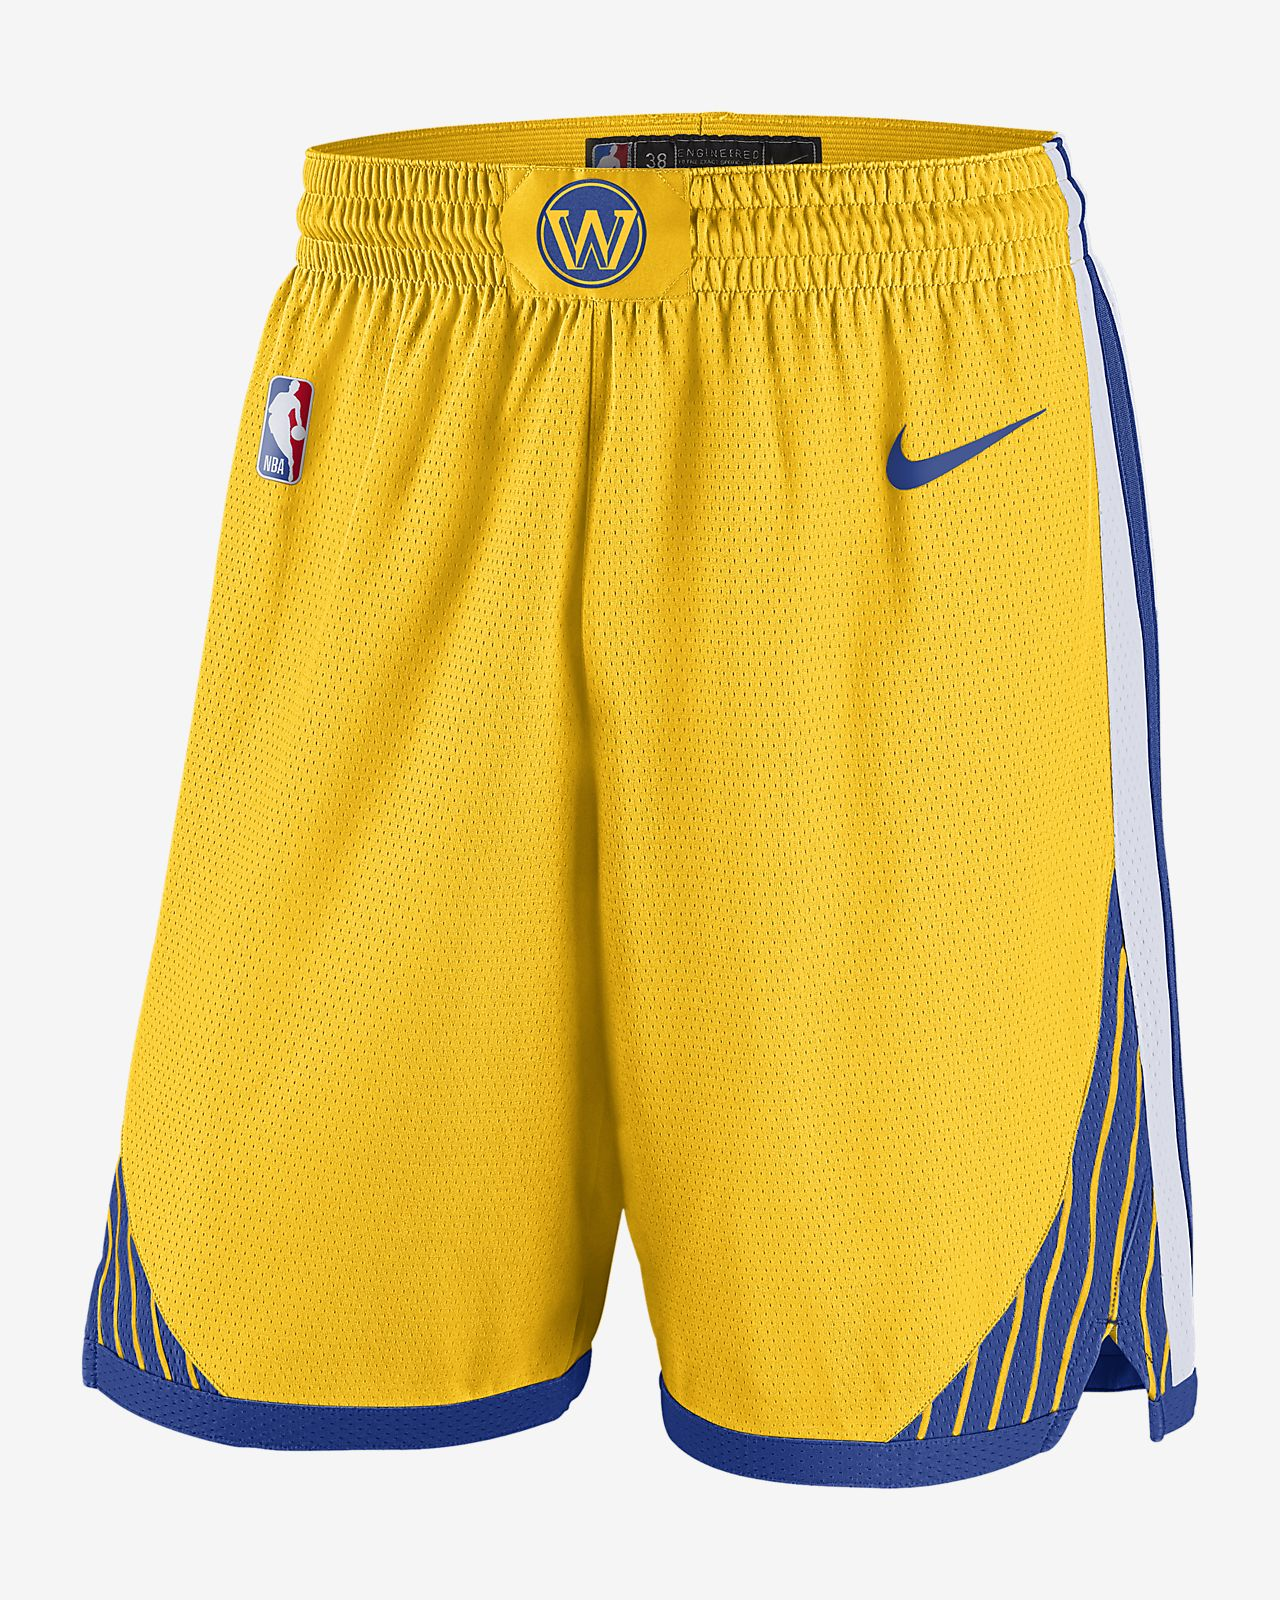 Golden State Warriors Statement Edition Swingman Nike NBA-herenshorts